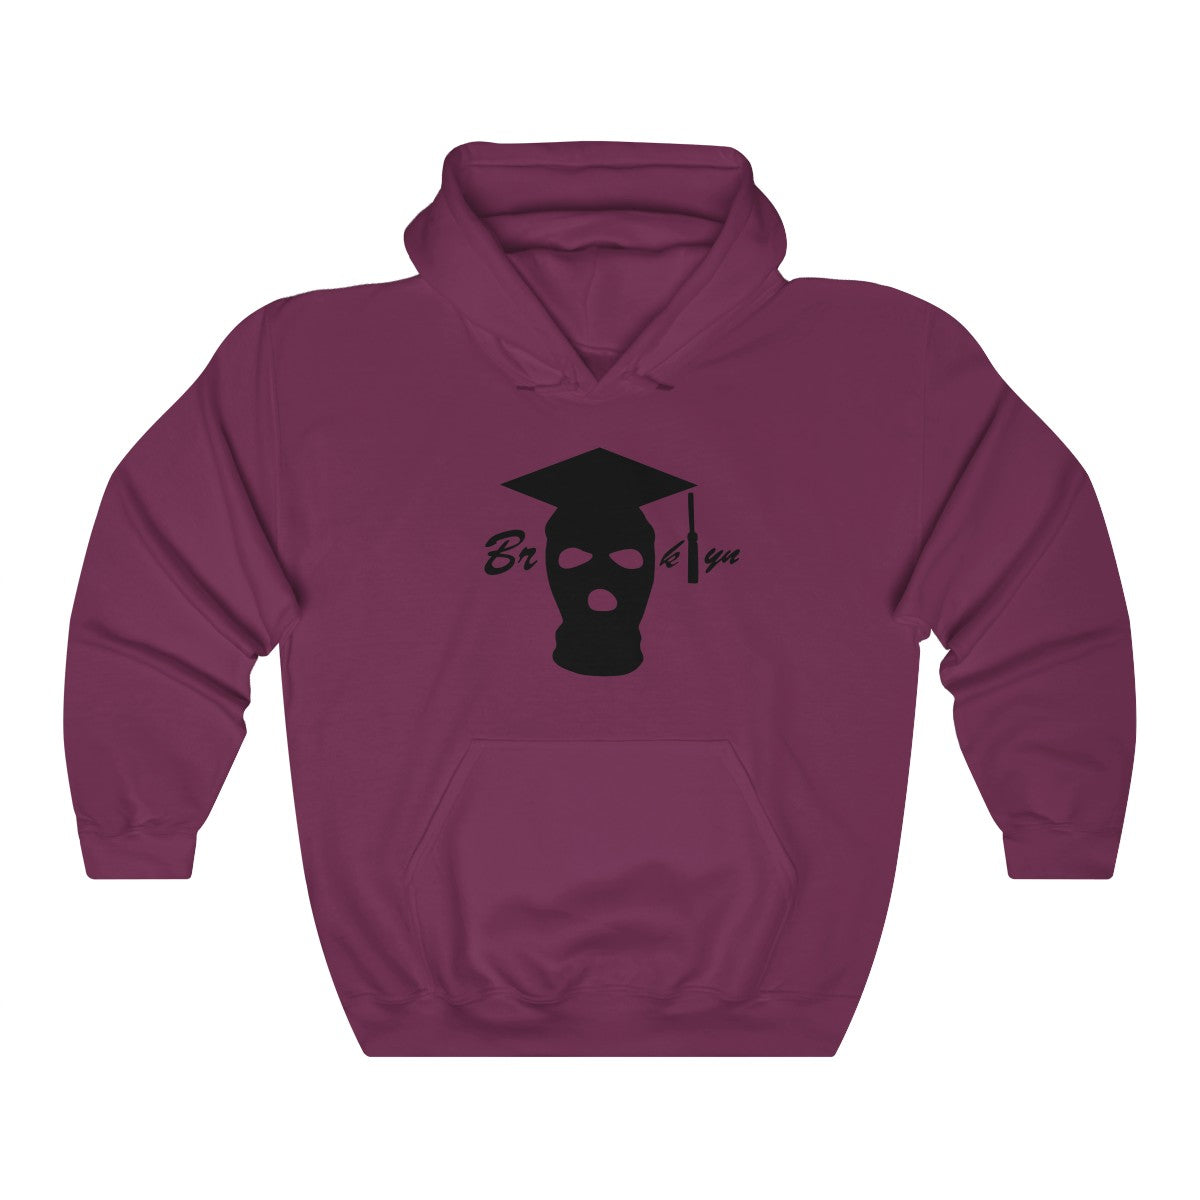 BLACK LOGO GRADUATION HOODIES